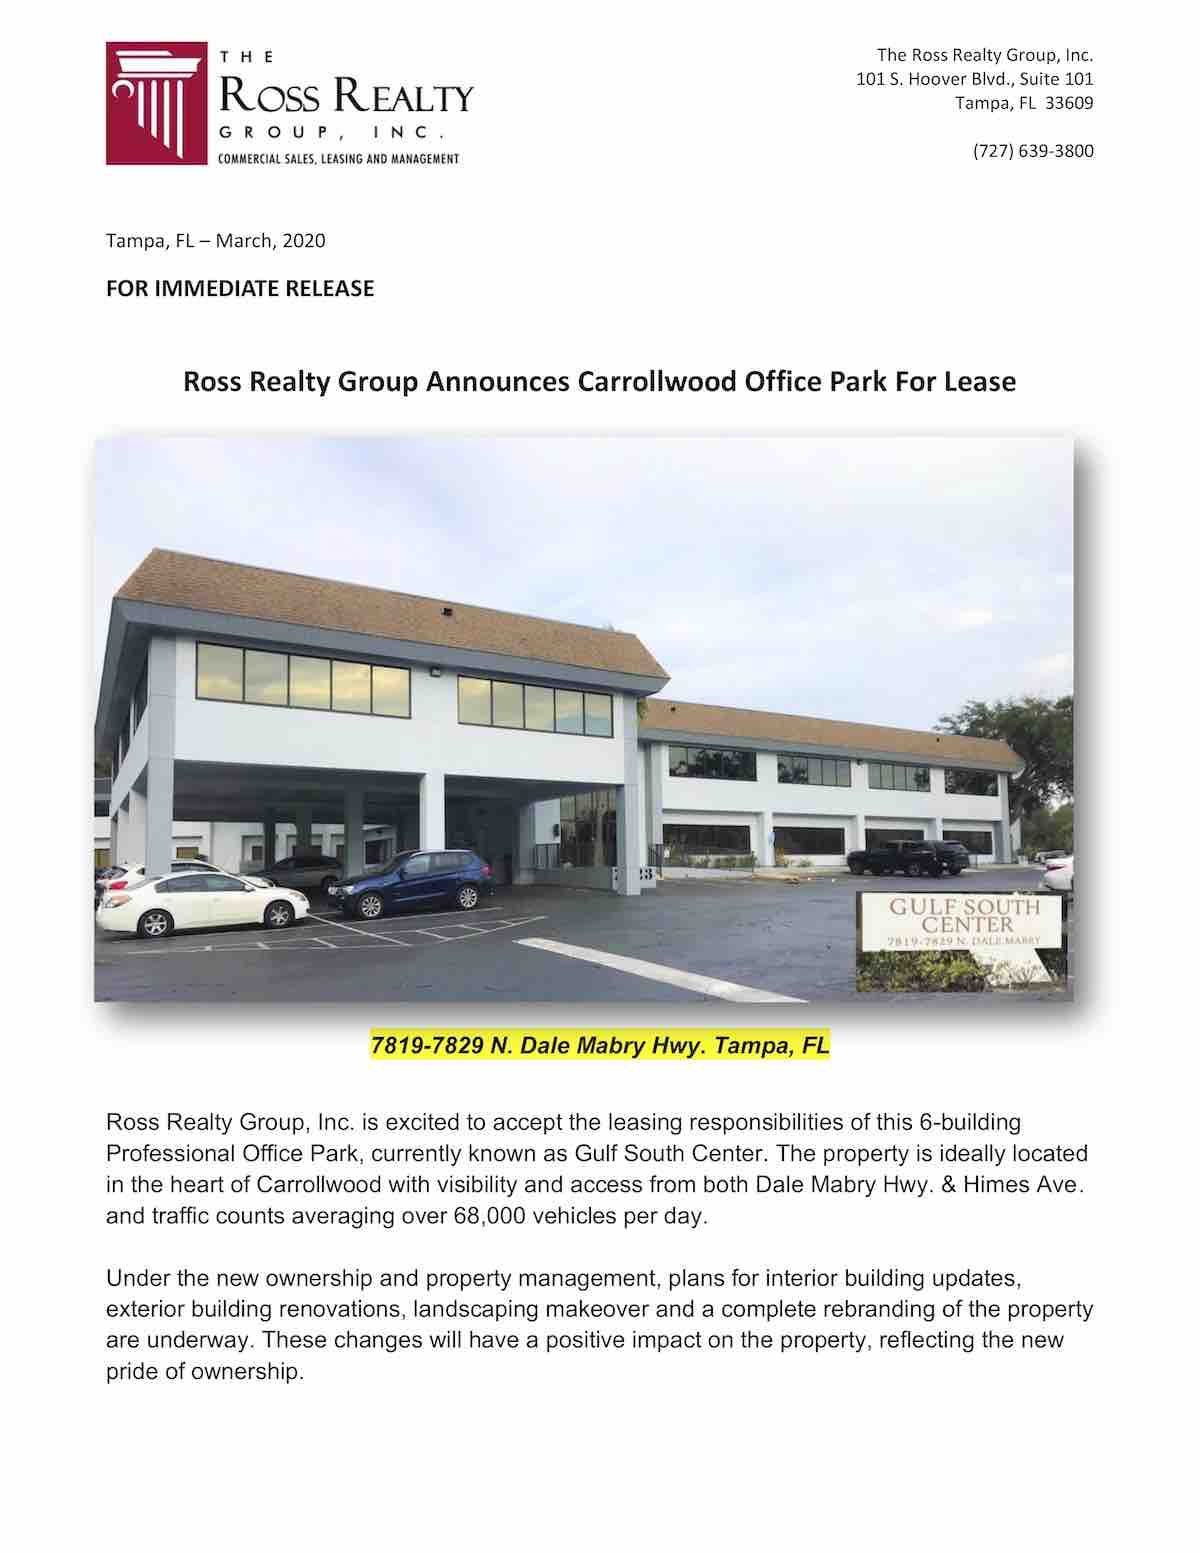 Ross Realty Group Announces Carrollwood Office Park For Lease